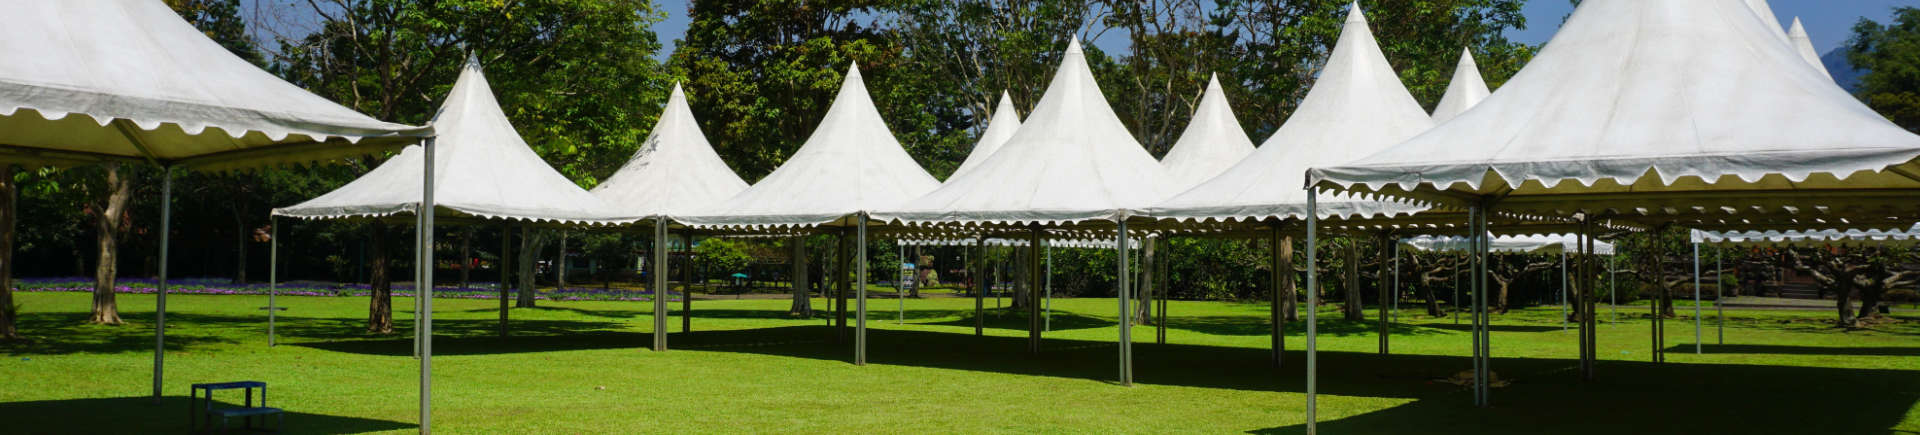 white tents on manicured lawn in garden